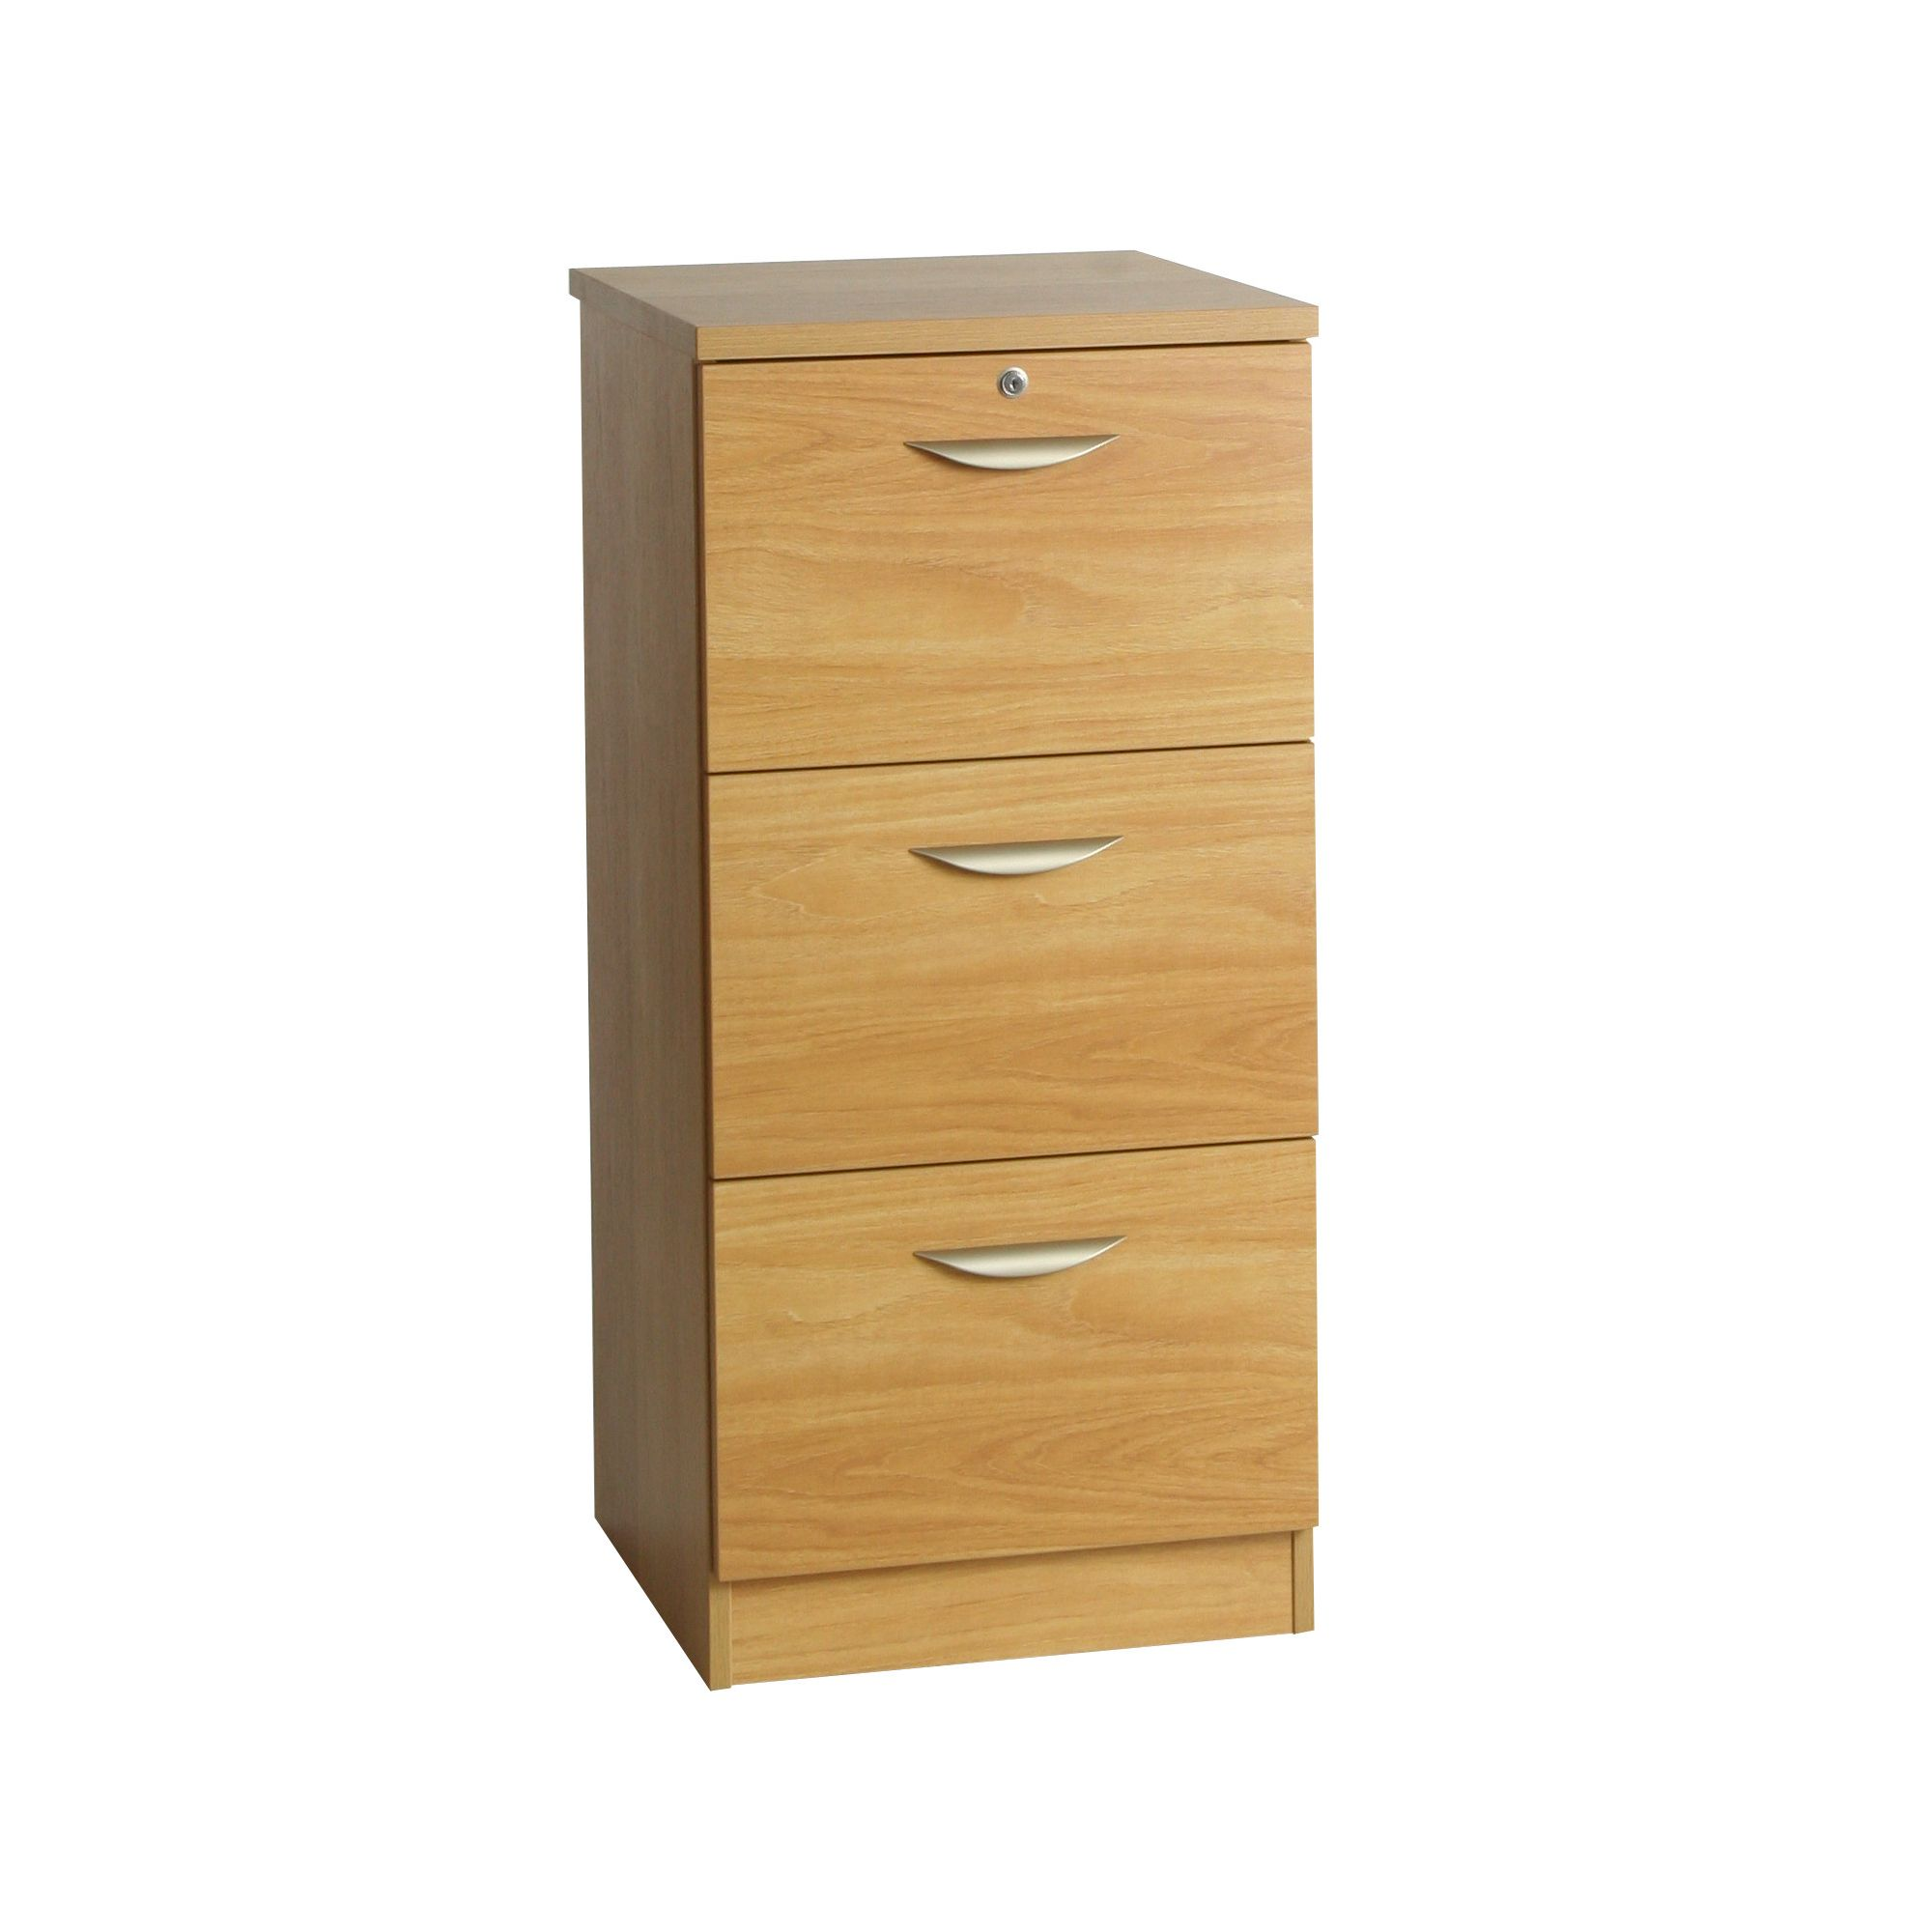 Enduro Three Drawer Tall Wooden Filing Cabinet - Warm Oak at Tesco Direct